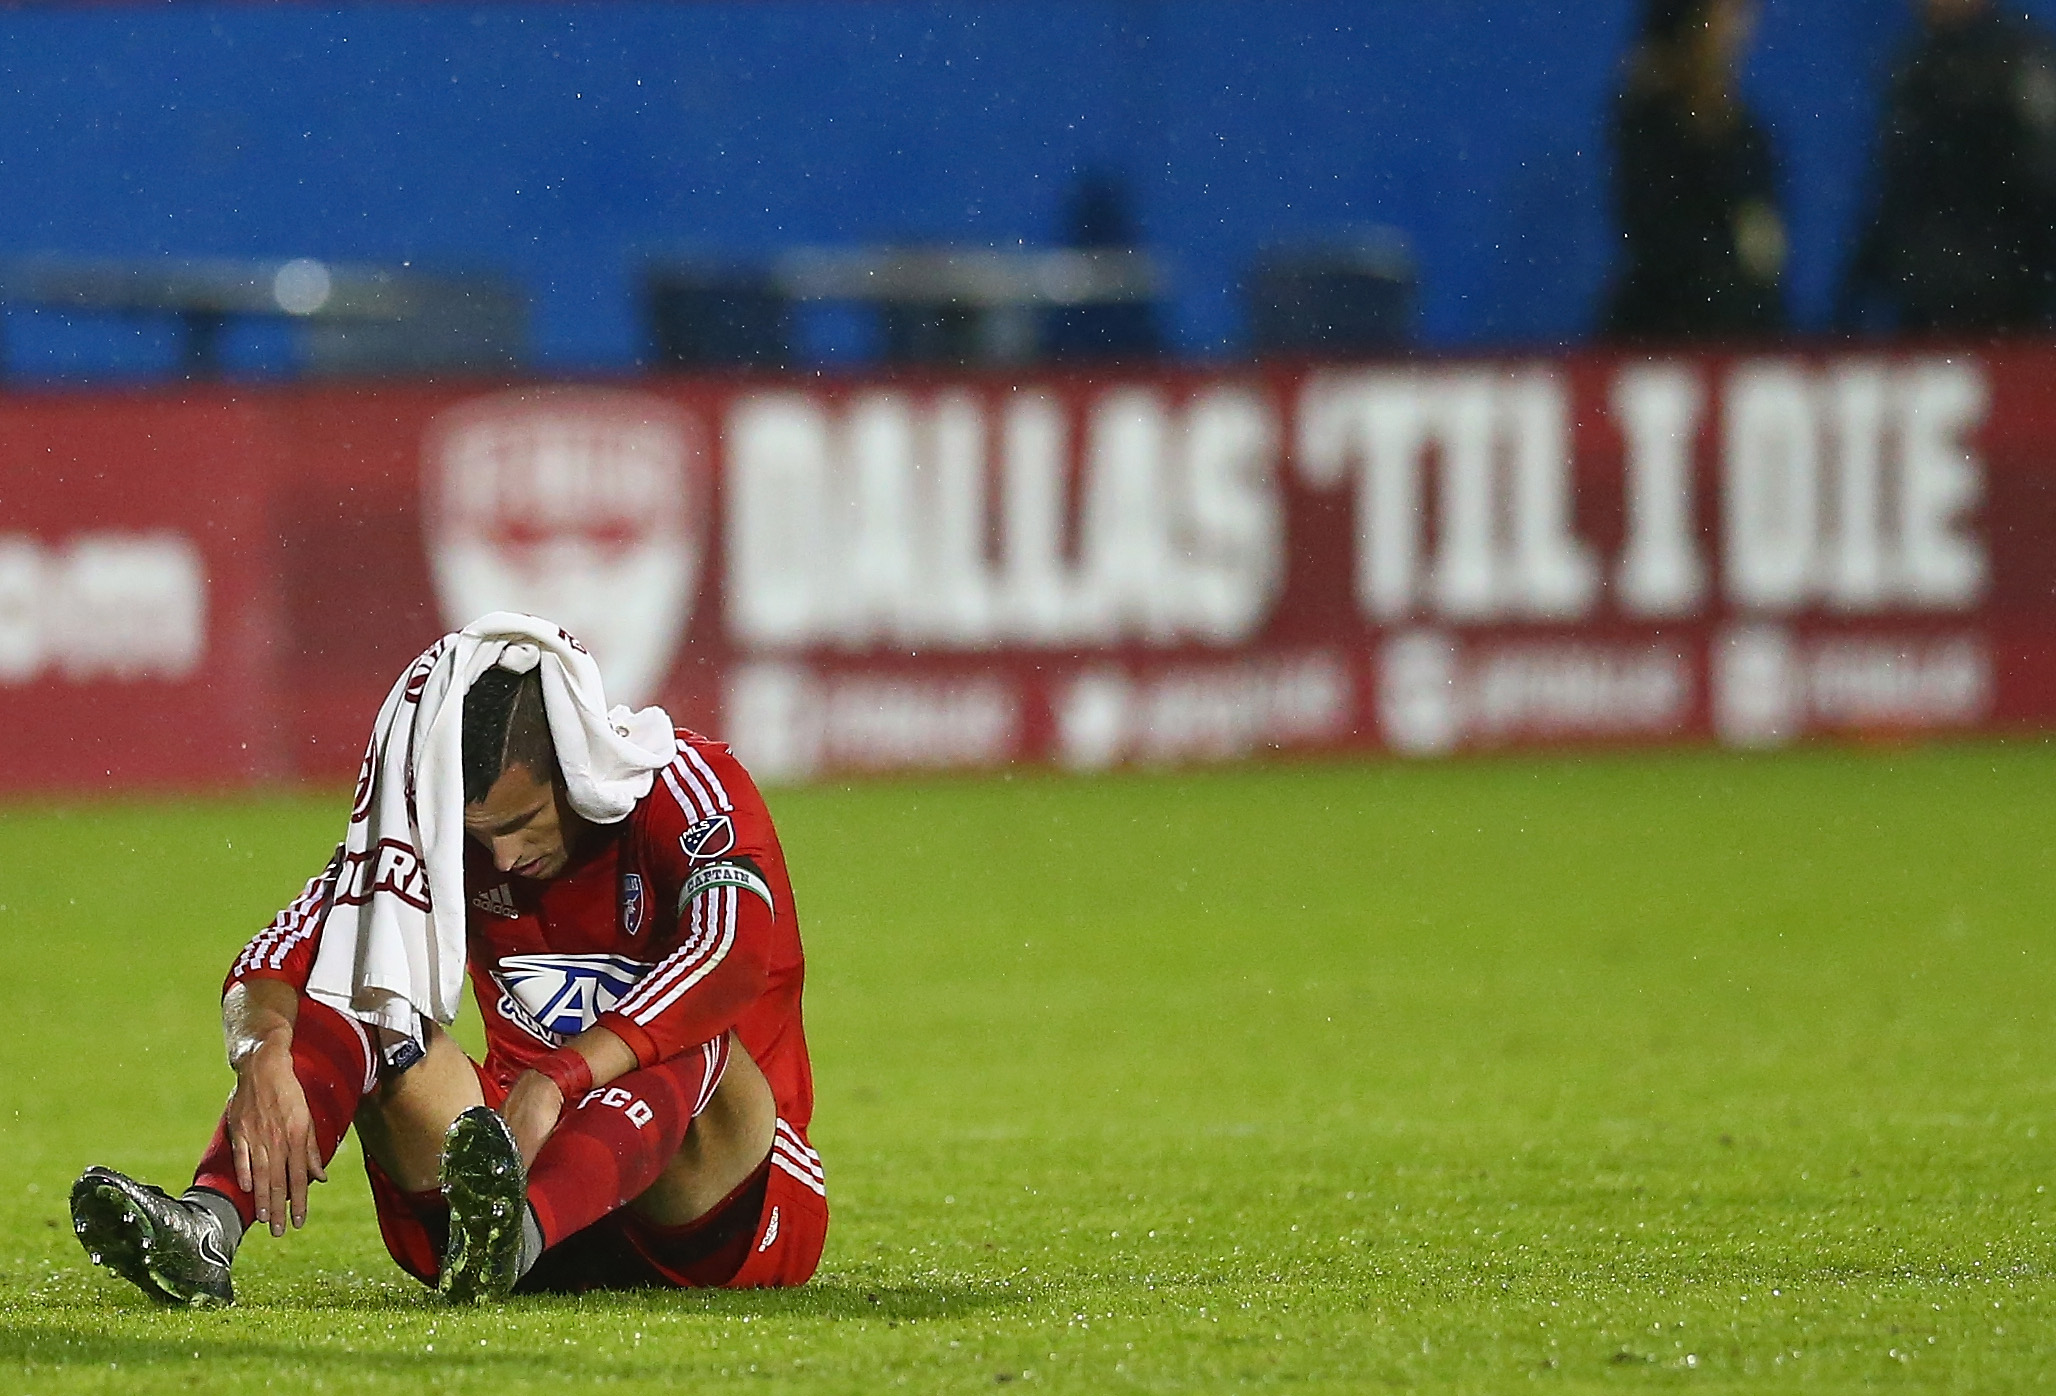 FRISCO, TX - NOVEMBER 29:  Matt Hedges #24 of FC Dallas sits on the field after losing to the Portland Timbers during the Western Conference Finals-Leg 2 of the MLS playoffs at Toyota Stadium on November 29, 2015 in Frisco, Texas.  (Photo by Ronald Martinez/Getty Images)